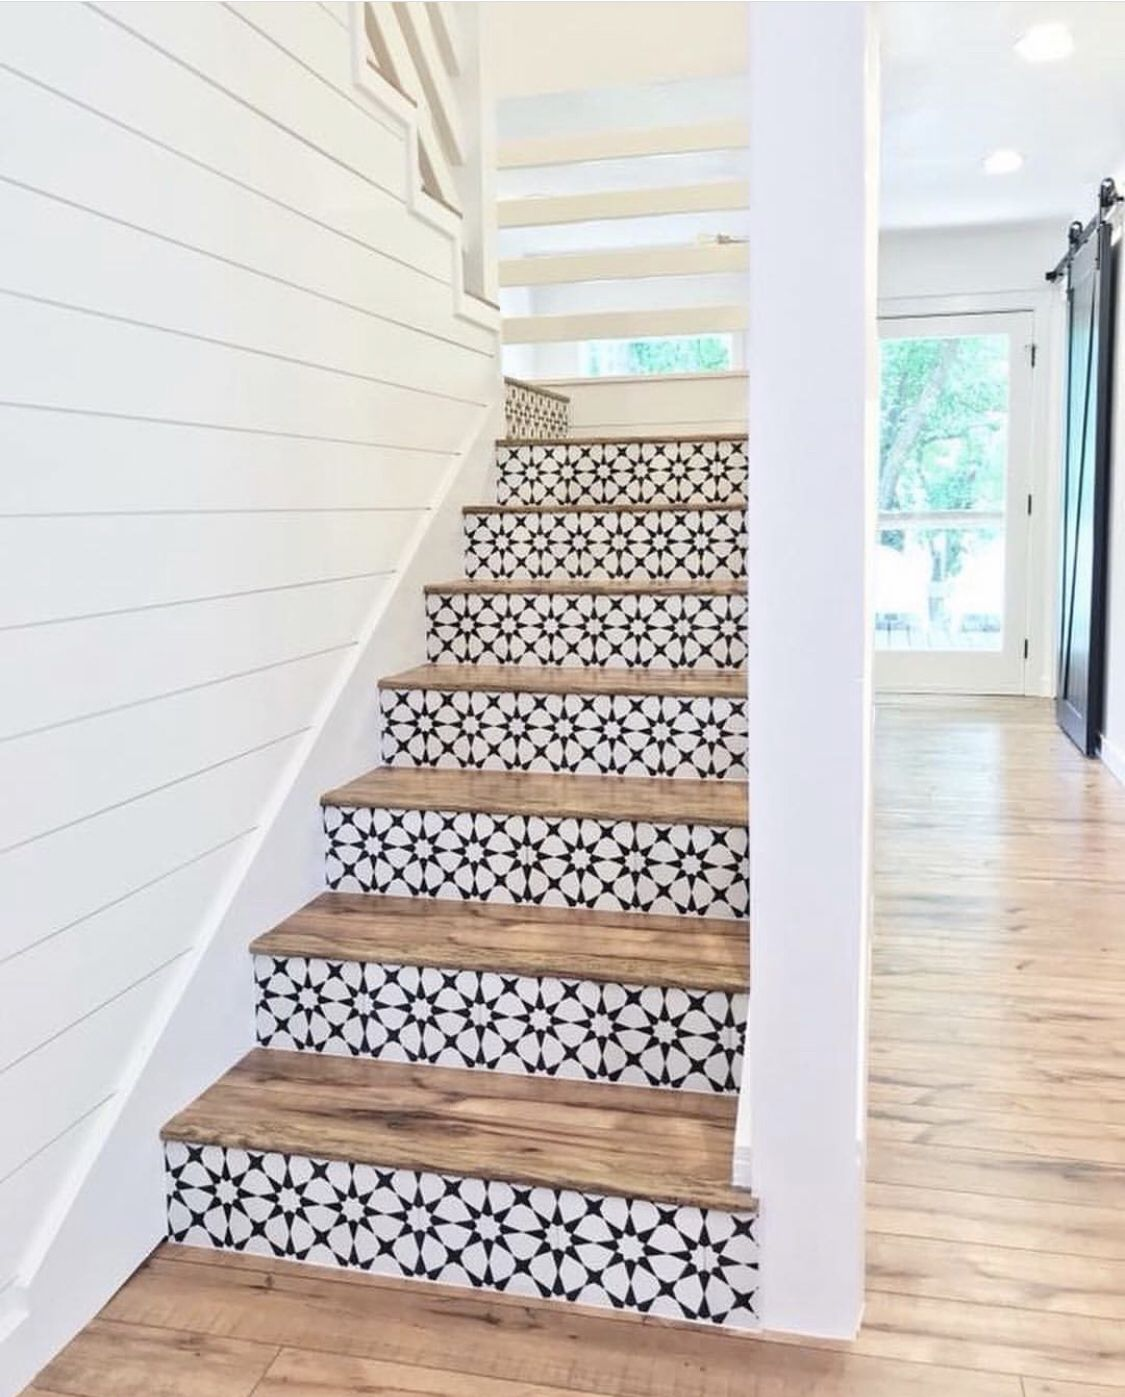 Pin By Sydney Reyes On Parker Reign House Design Tile Stairs Home   Wood And Tile Stairs   Rocell Living Room   Tile Floor   Basement   Quarter Round Stair Hardwood   White